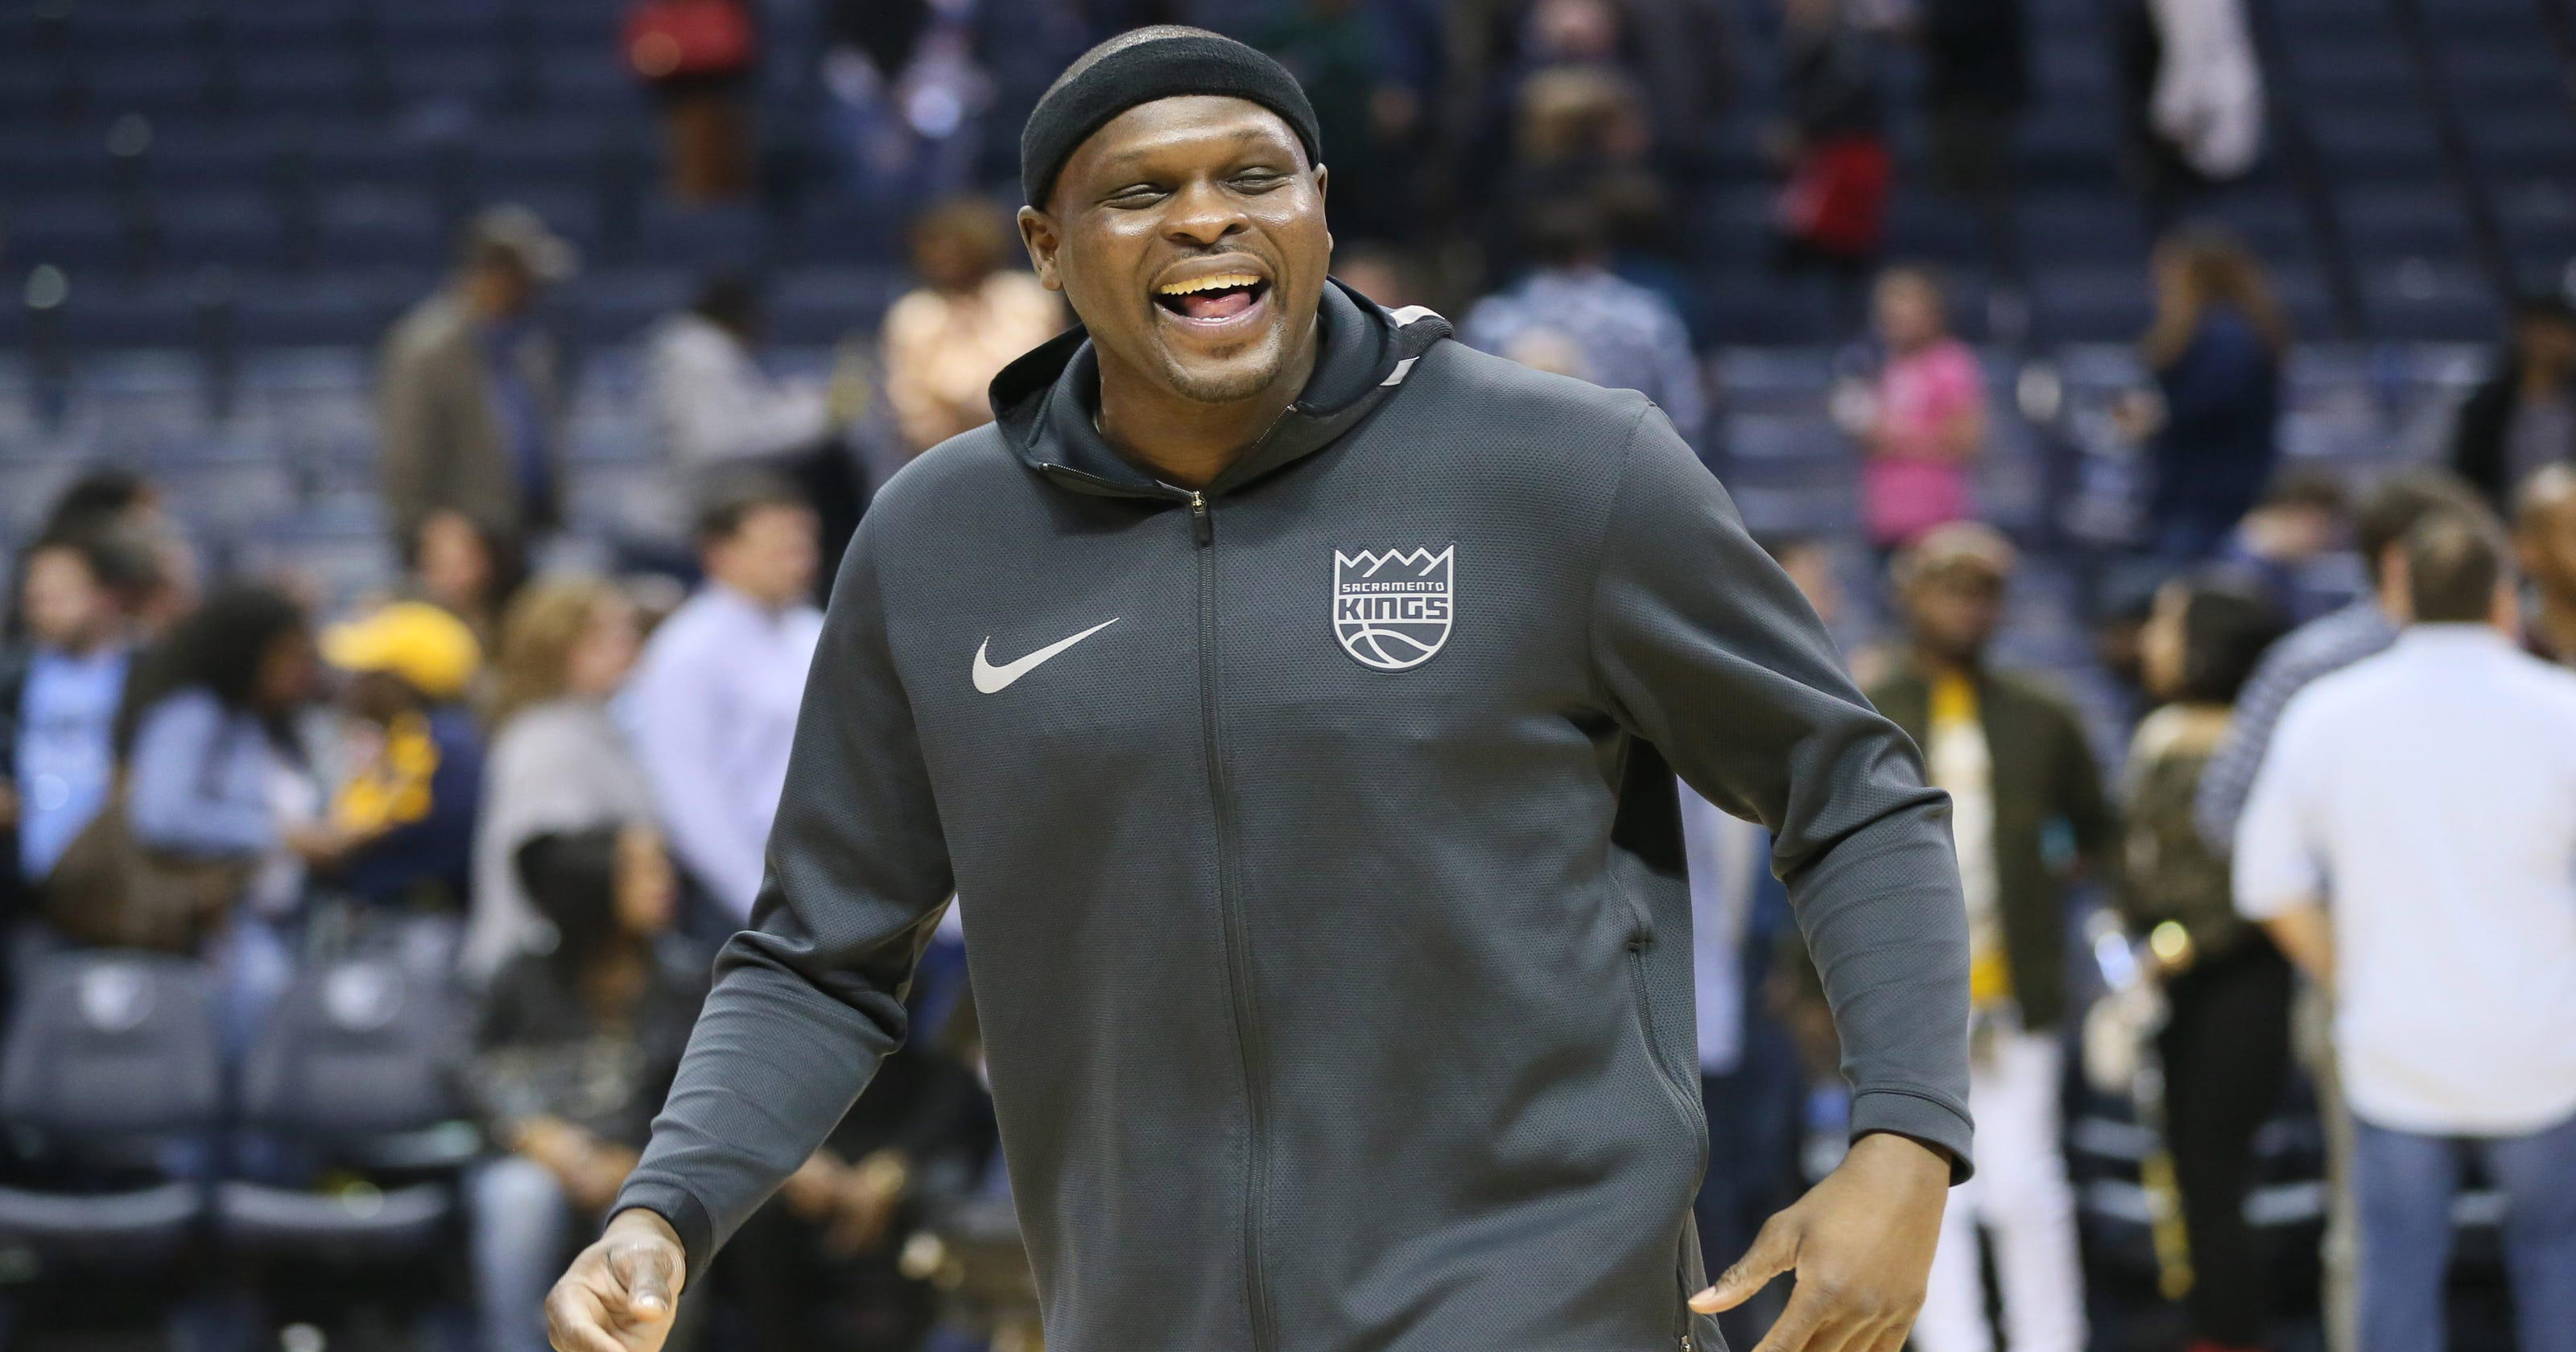 Zach Randolph's brother killed in shooting incident in Marion, Ind